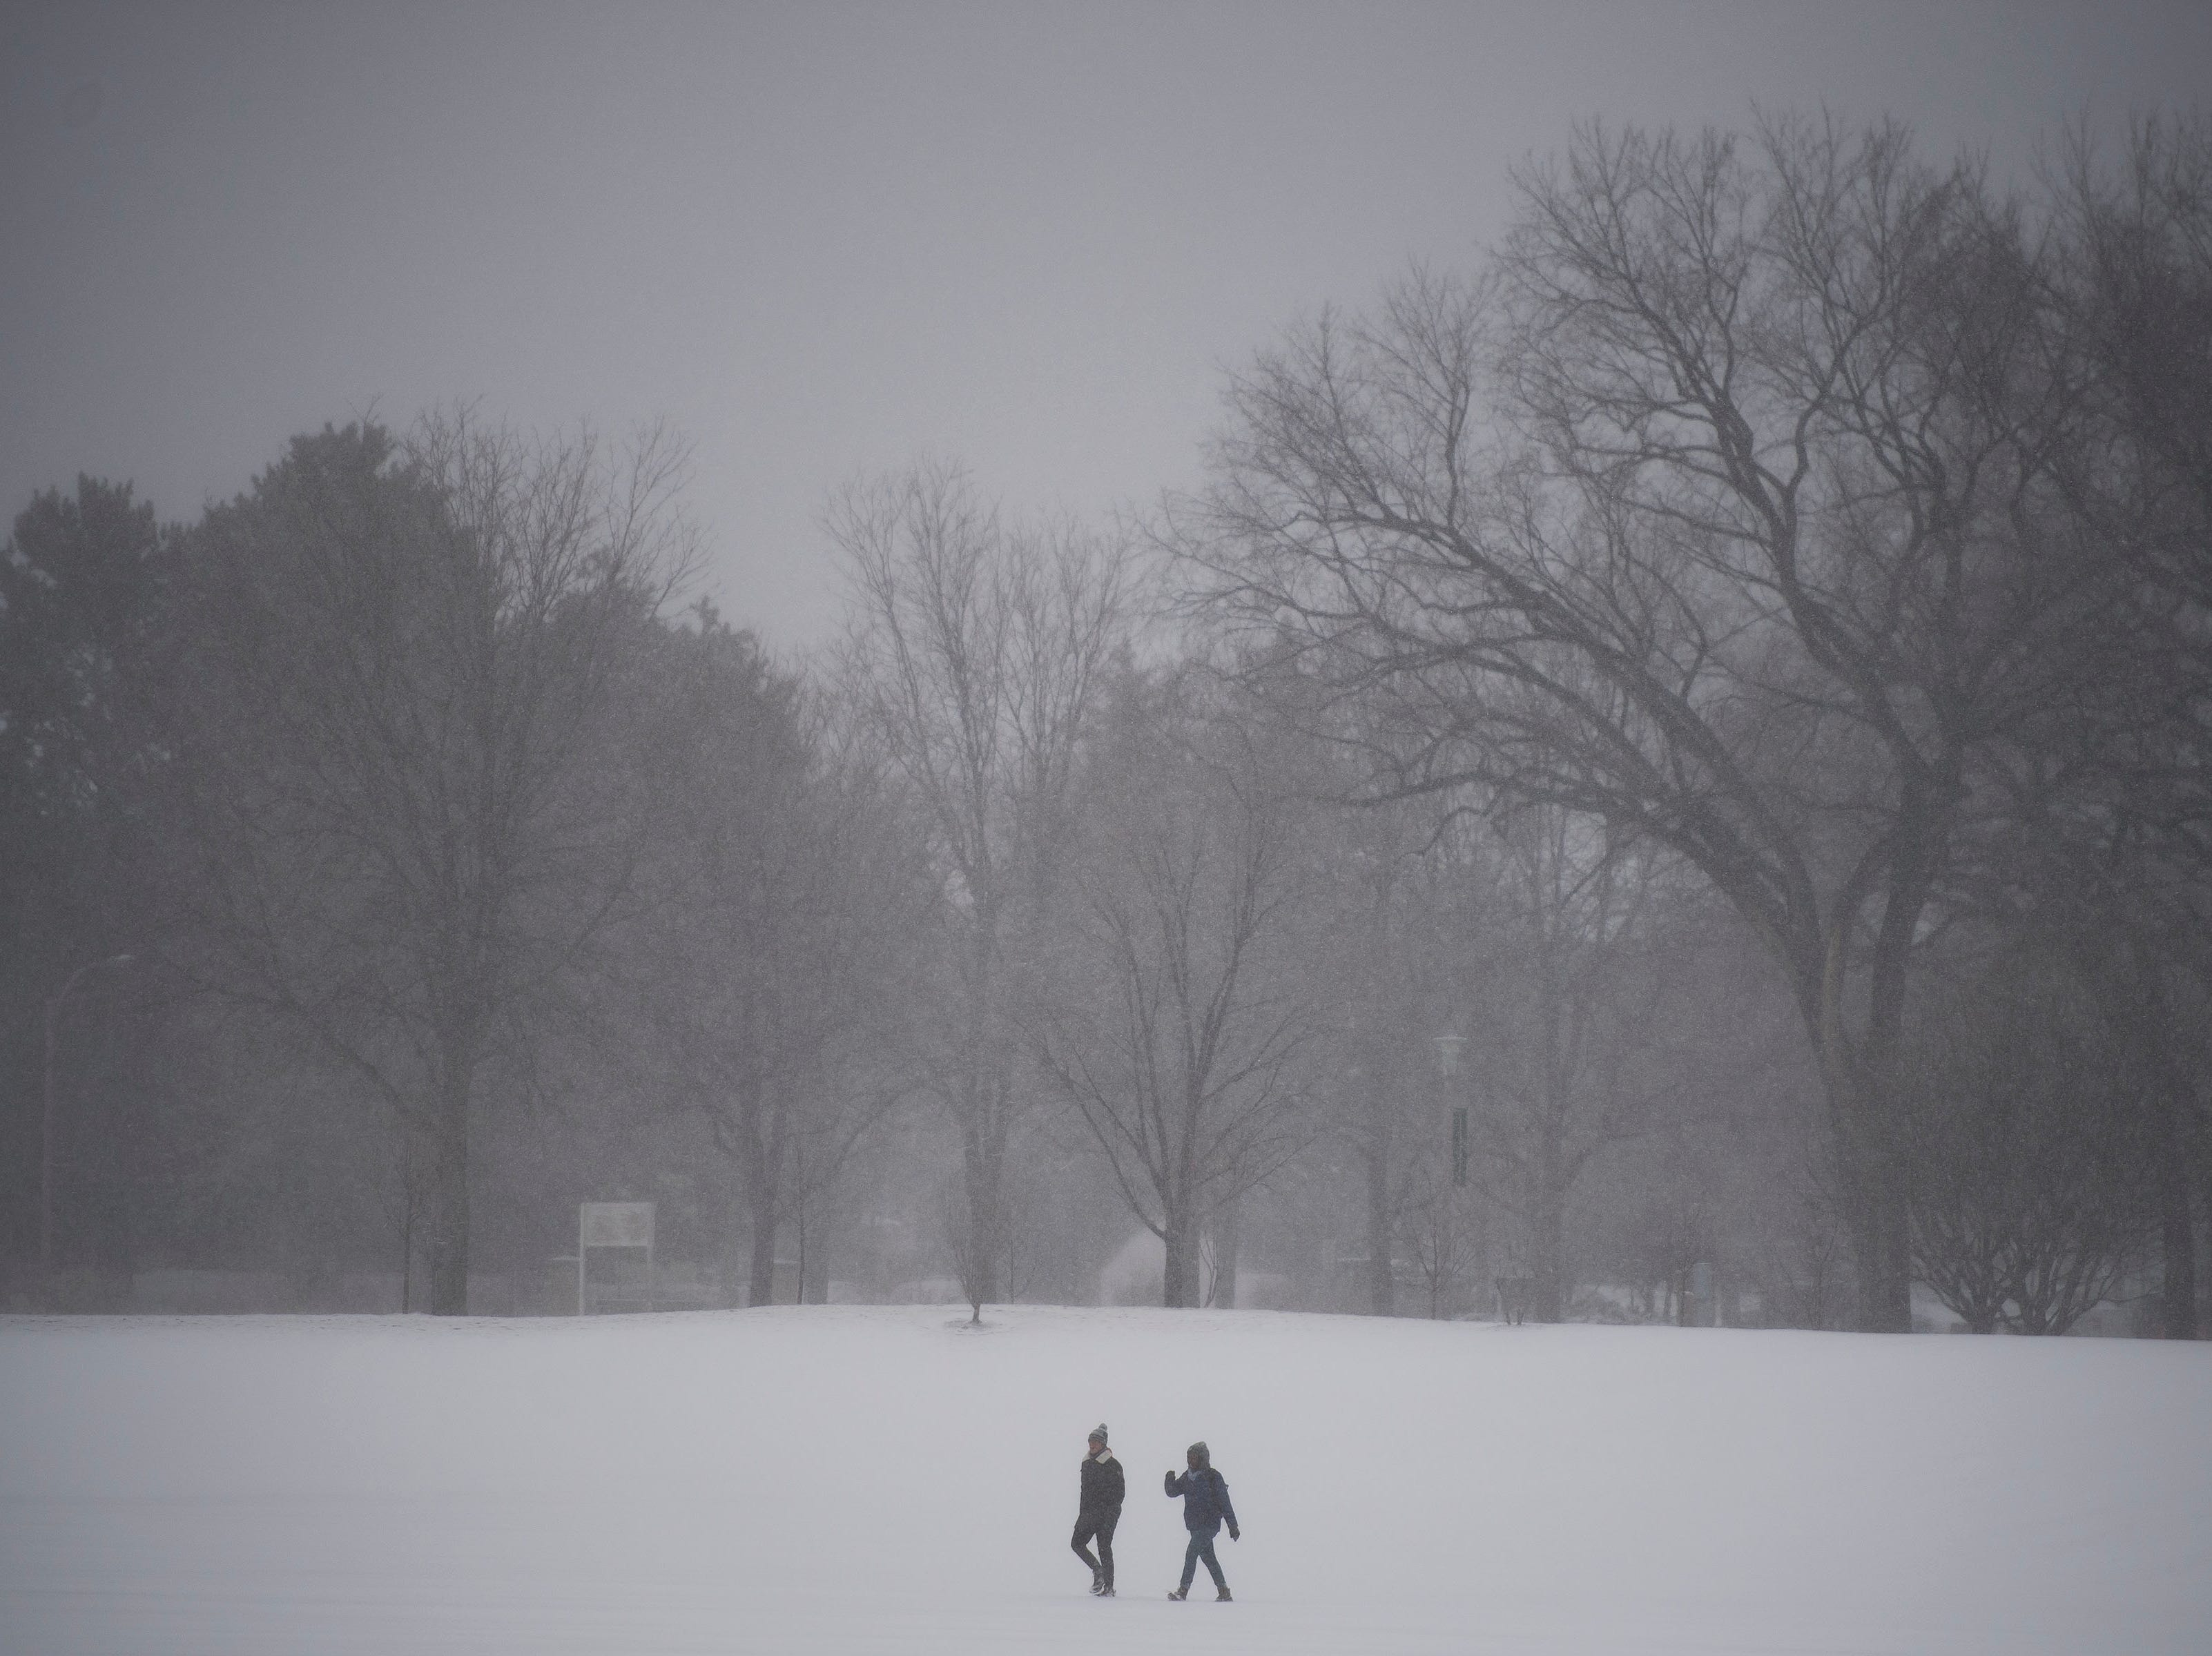 People walk through a snowy field just West of the Lory Student Center on Colorado State University's campus on Wednesday, March 13, 2019, in Fort Collins, Colo.